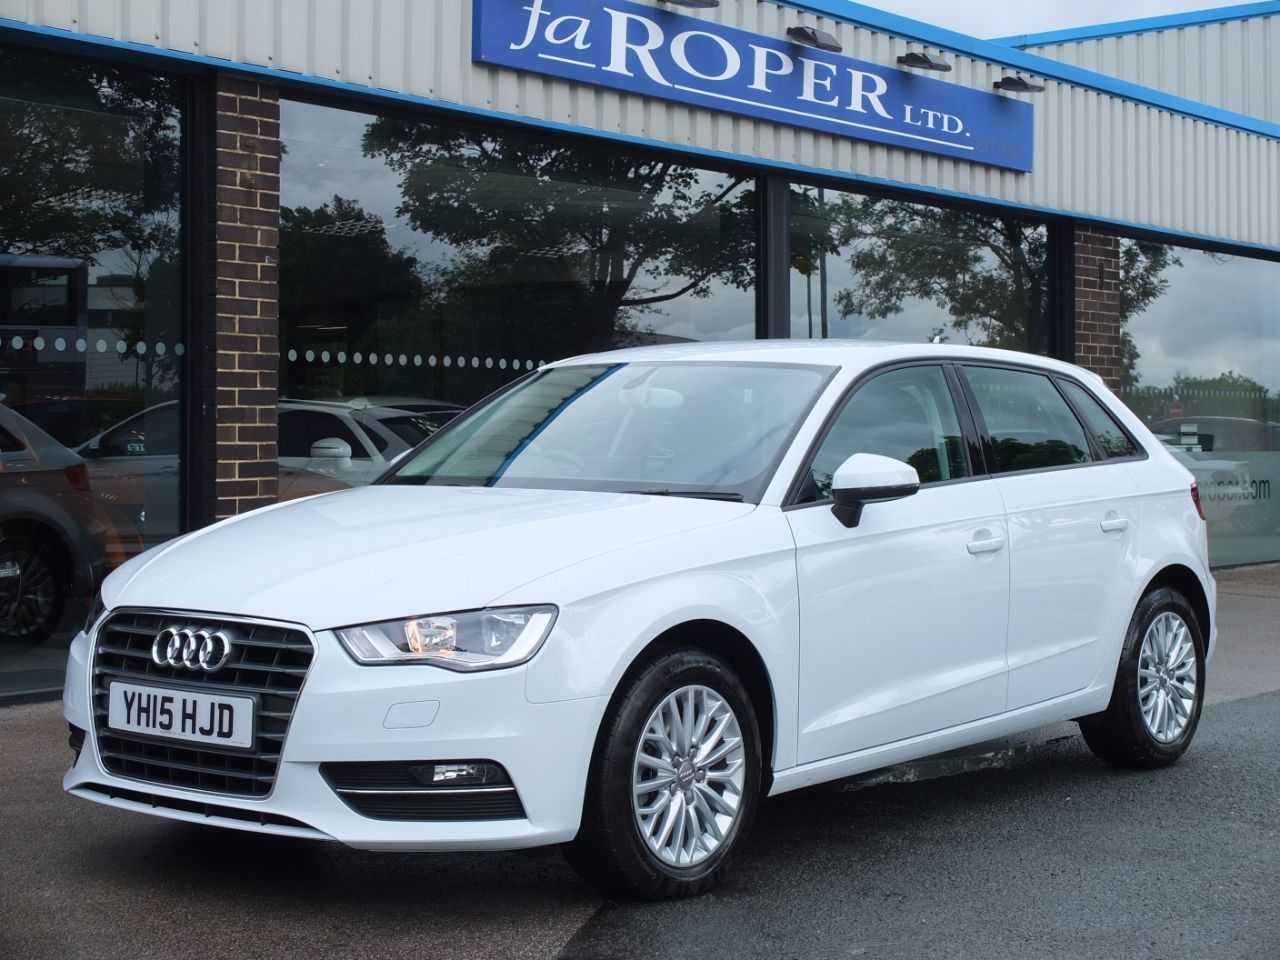 used audi a3 sportback 1 6 tdi se technik 5 door 110ps for. Black Bedroom Furniture Sets. Home Design Ideas